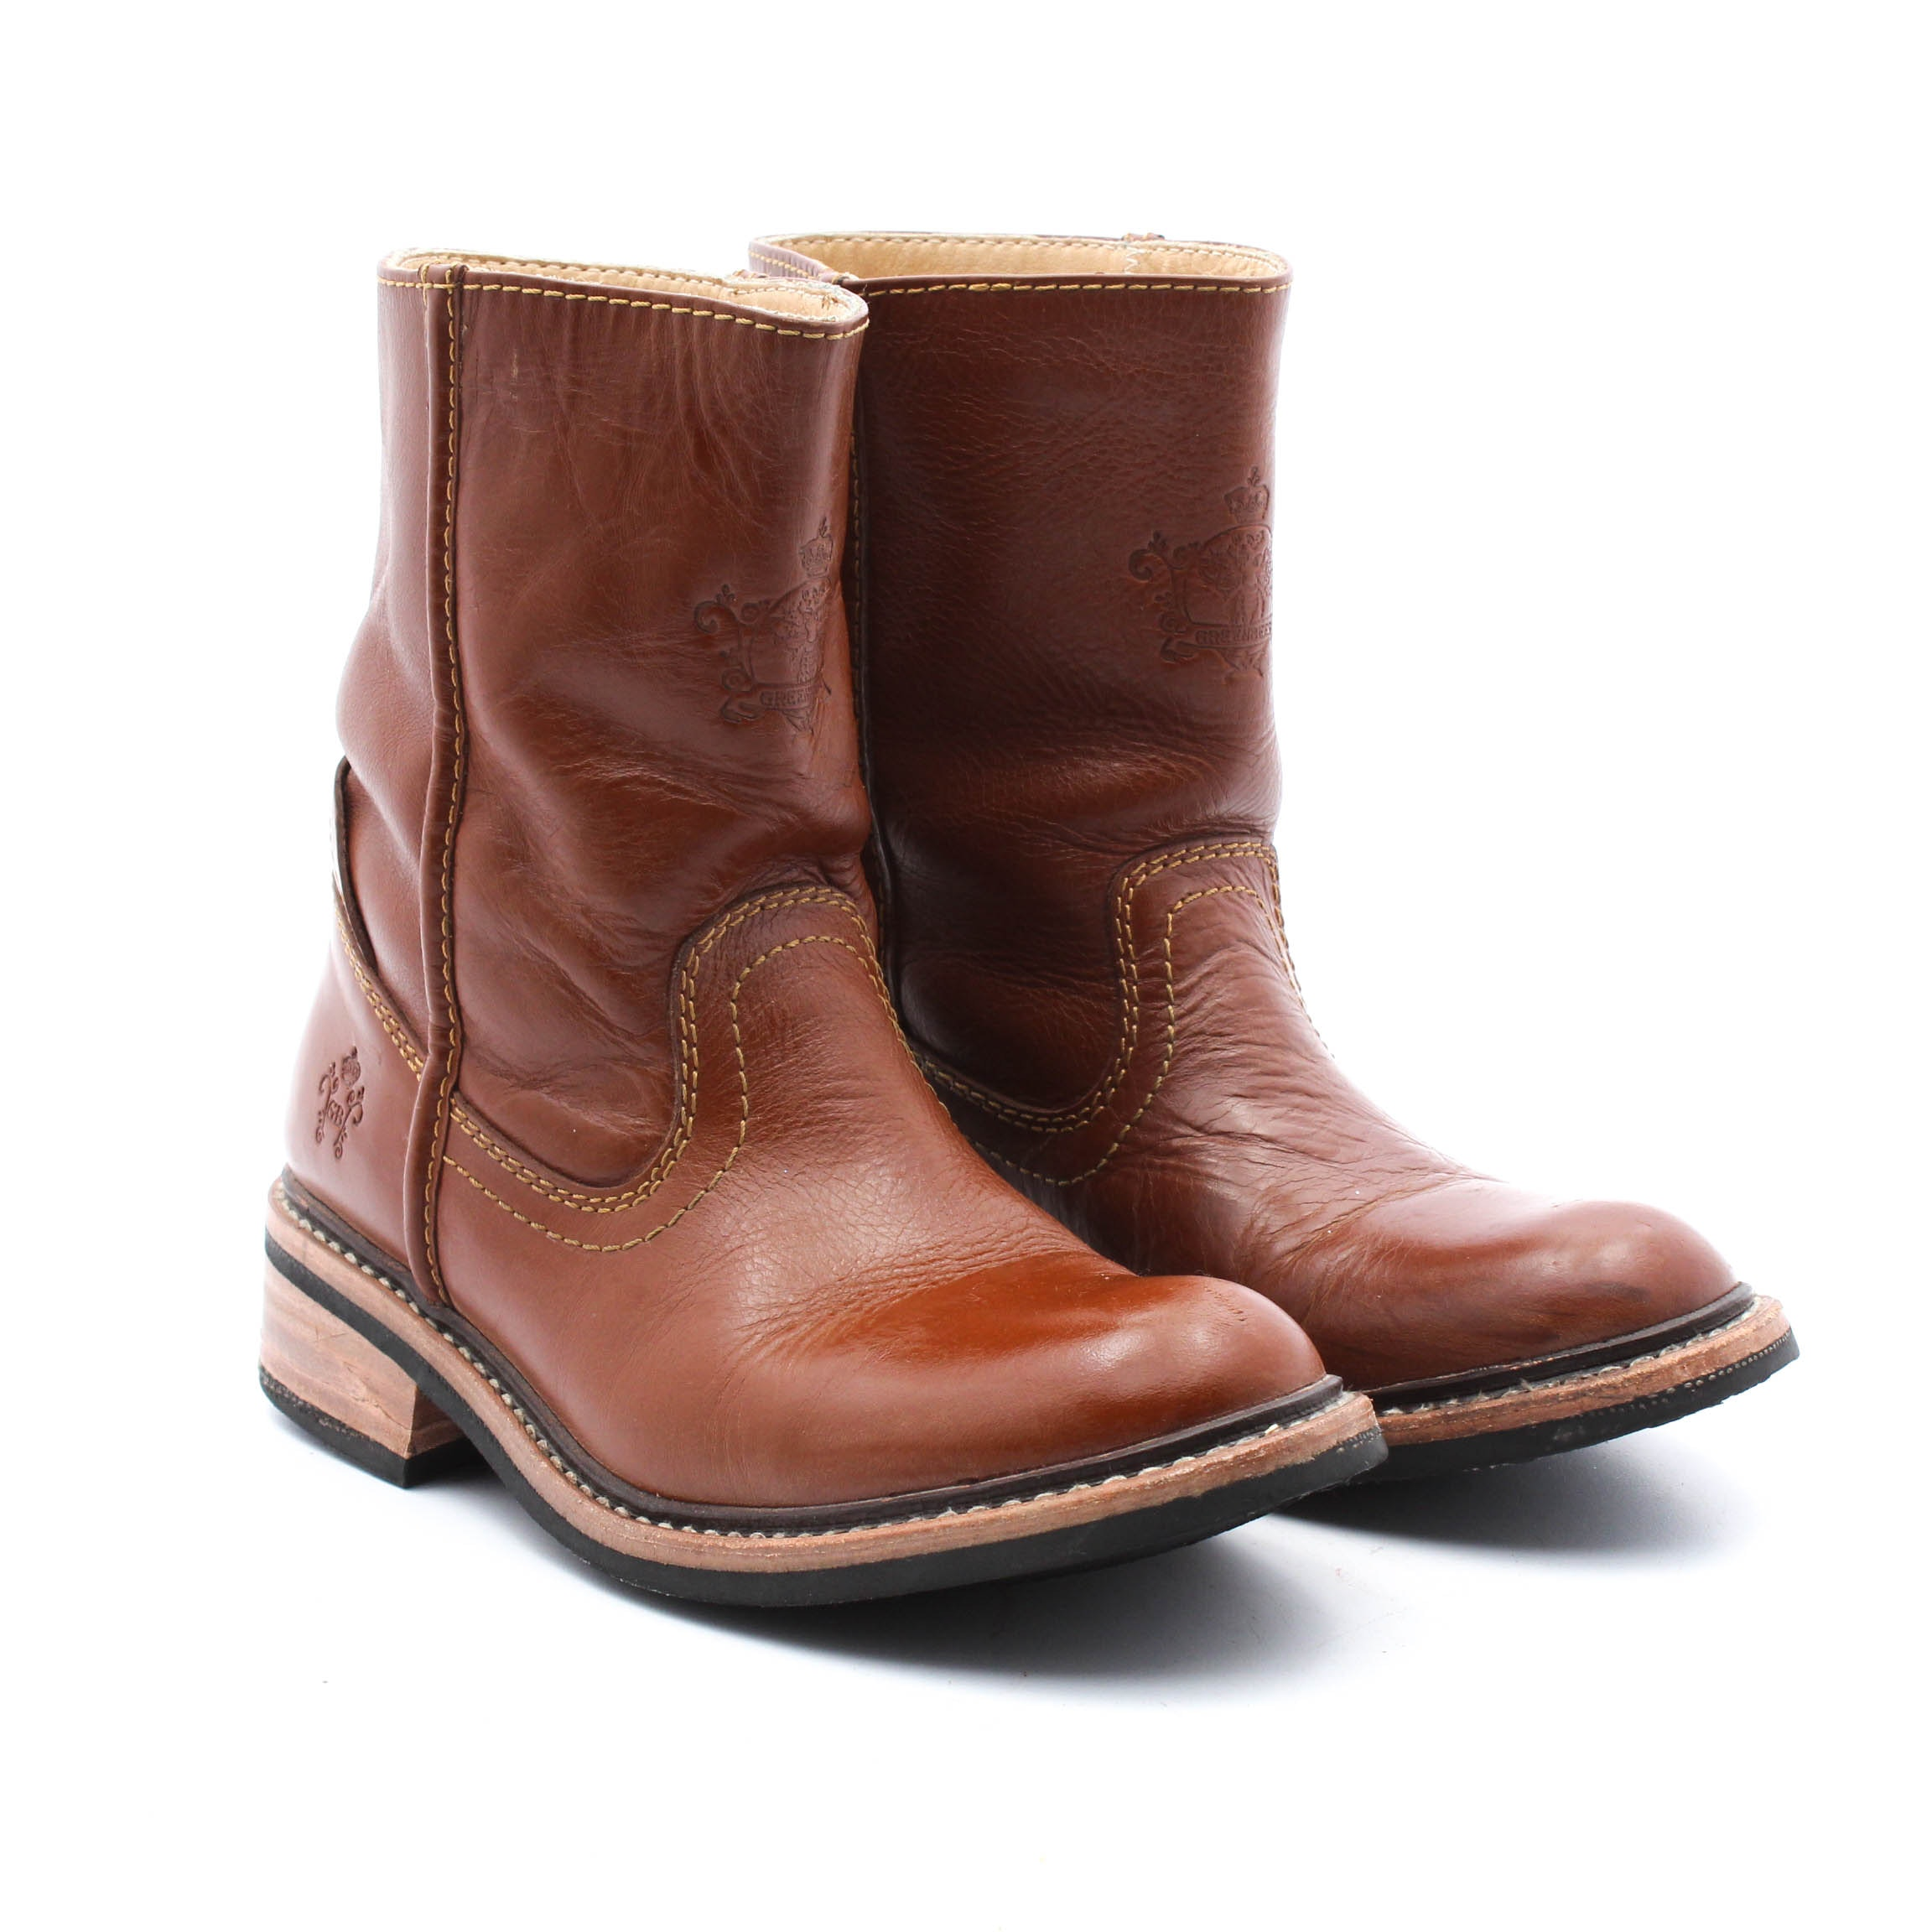 Women's Greenbees Embossed Brown Leather Western Style Boots